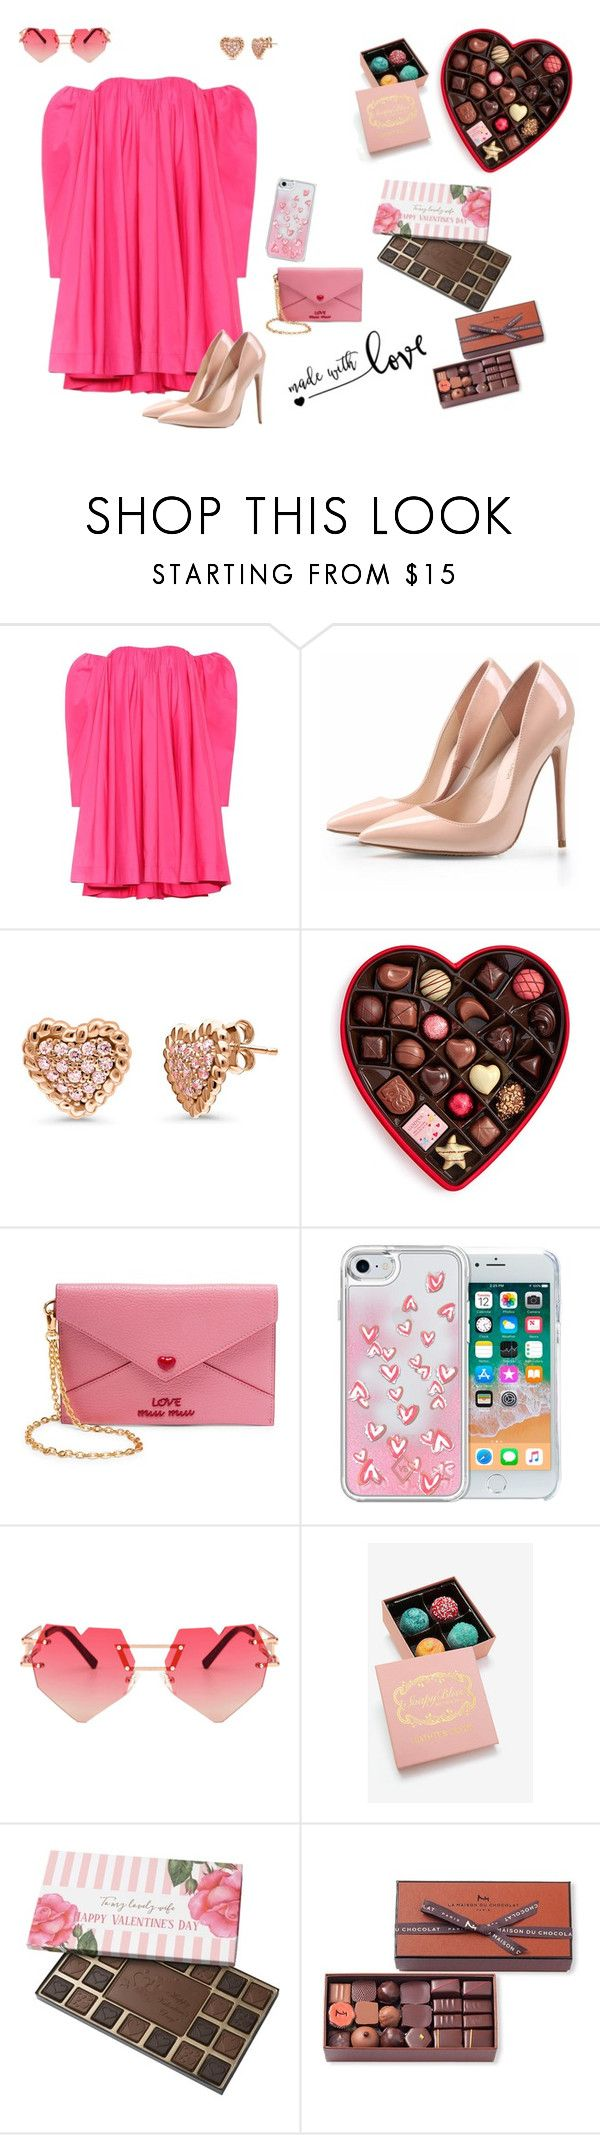 """Valentine's Day outfit #3: the girl who gets everything"" by glitterqueenz ❤ liked on Polyvore featuring Calvin Klein 205W39NYC, BERRICLE, Godiva, Miu Miu, Vera Bradley, La Maison Du Chocolat, valentinesday, valentines and ValentinesDayOutfit"